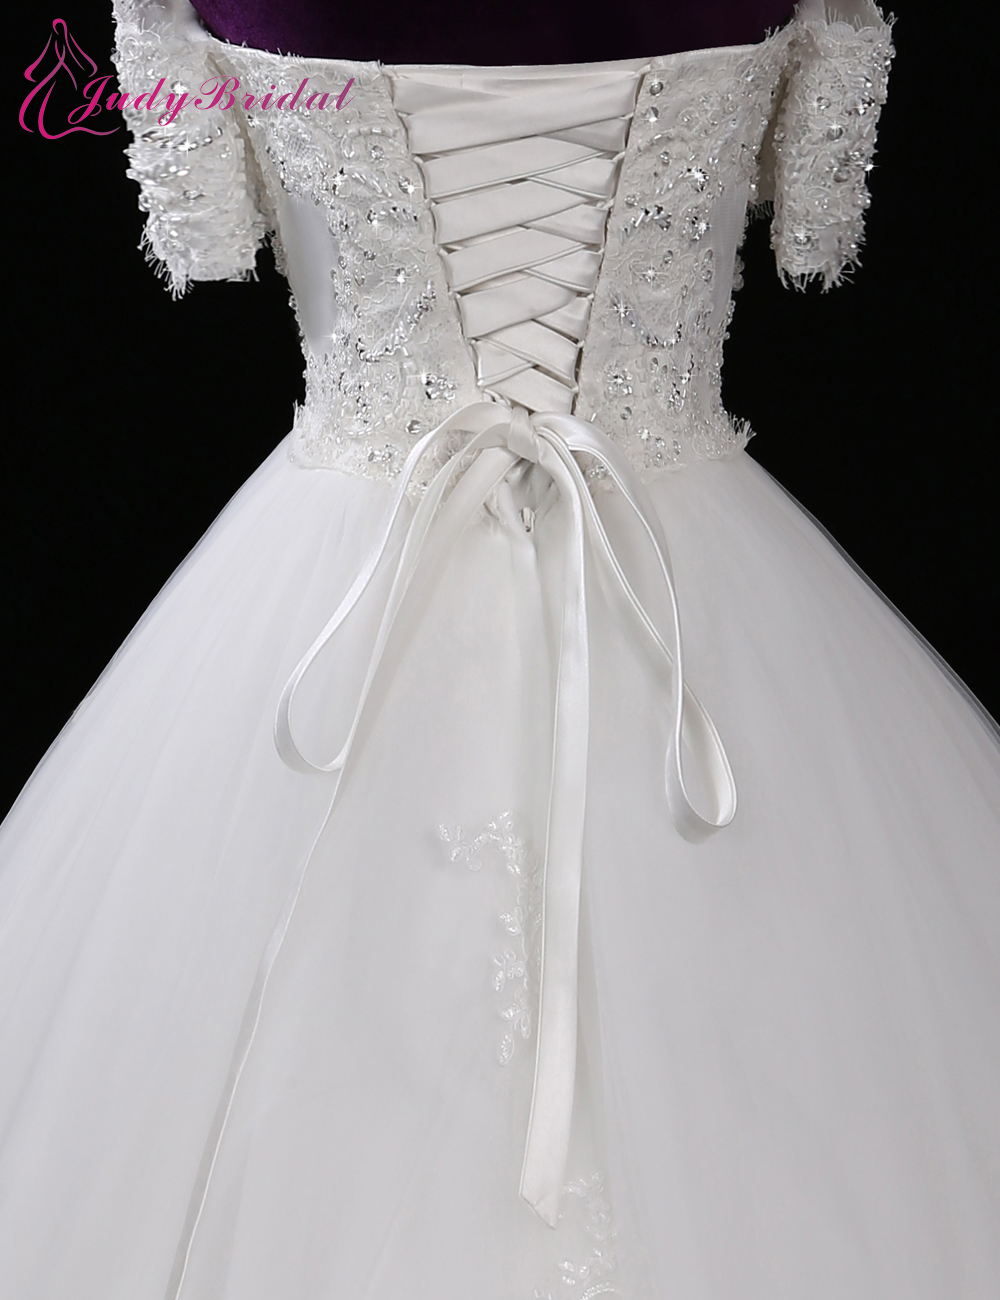 2016 new exquisite ball gown wedding dress half sleeve for Boat neck long sleeve wedding dress